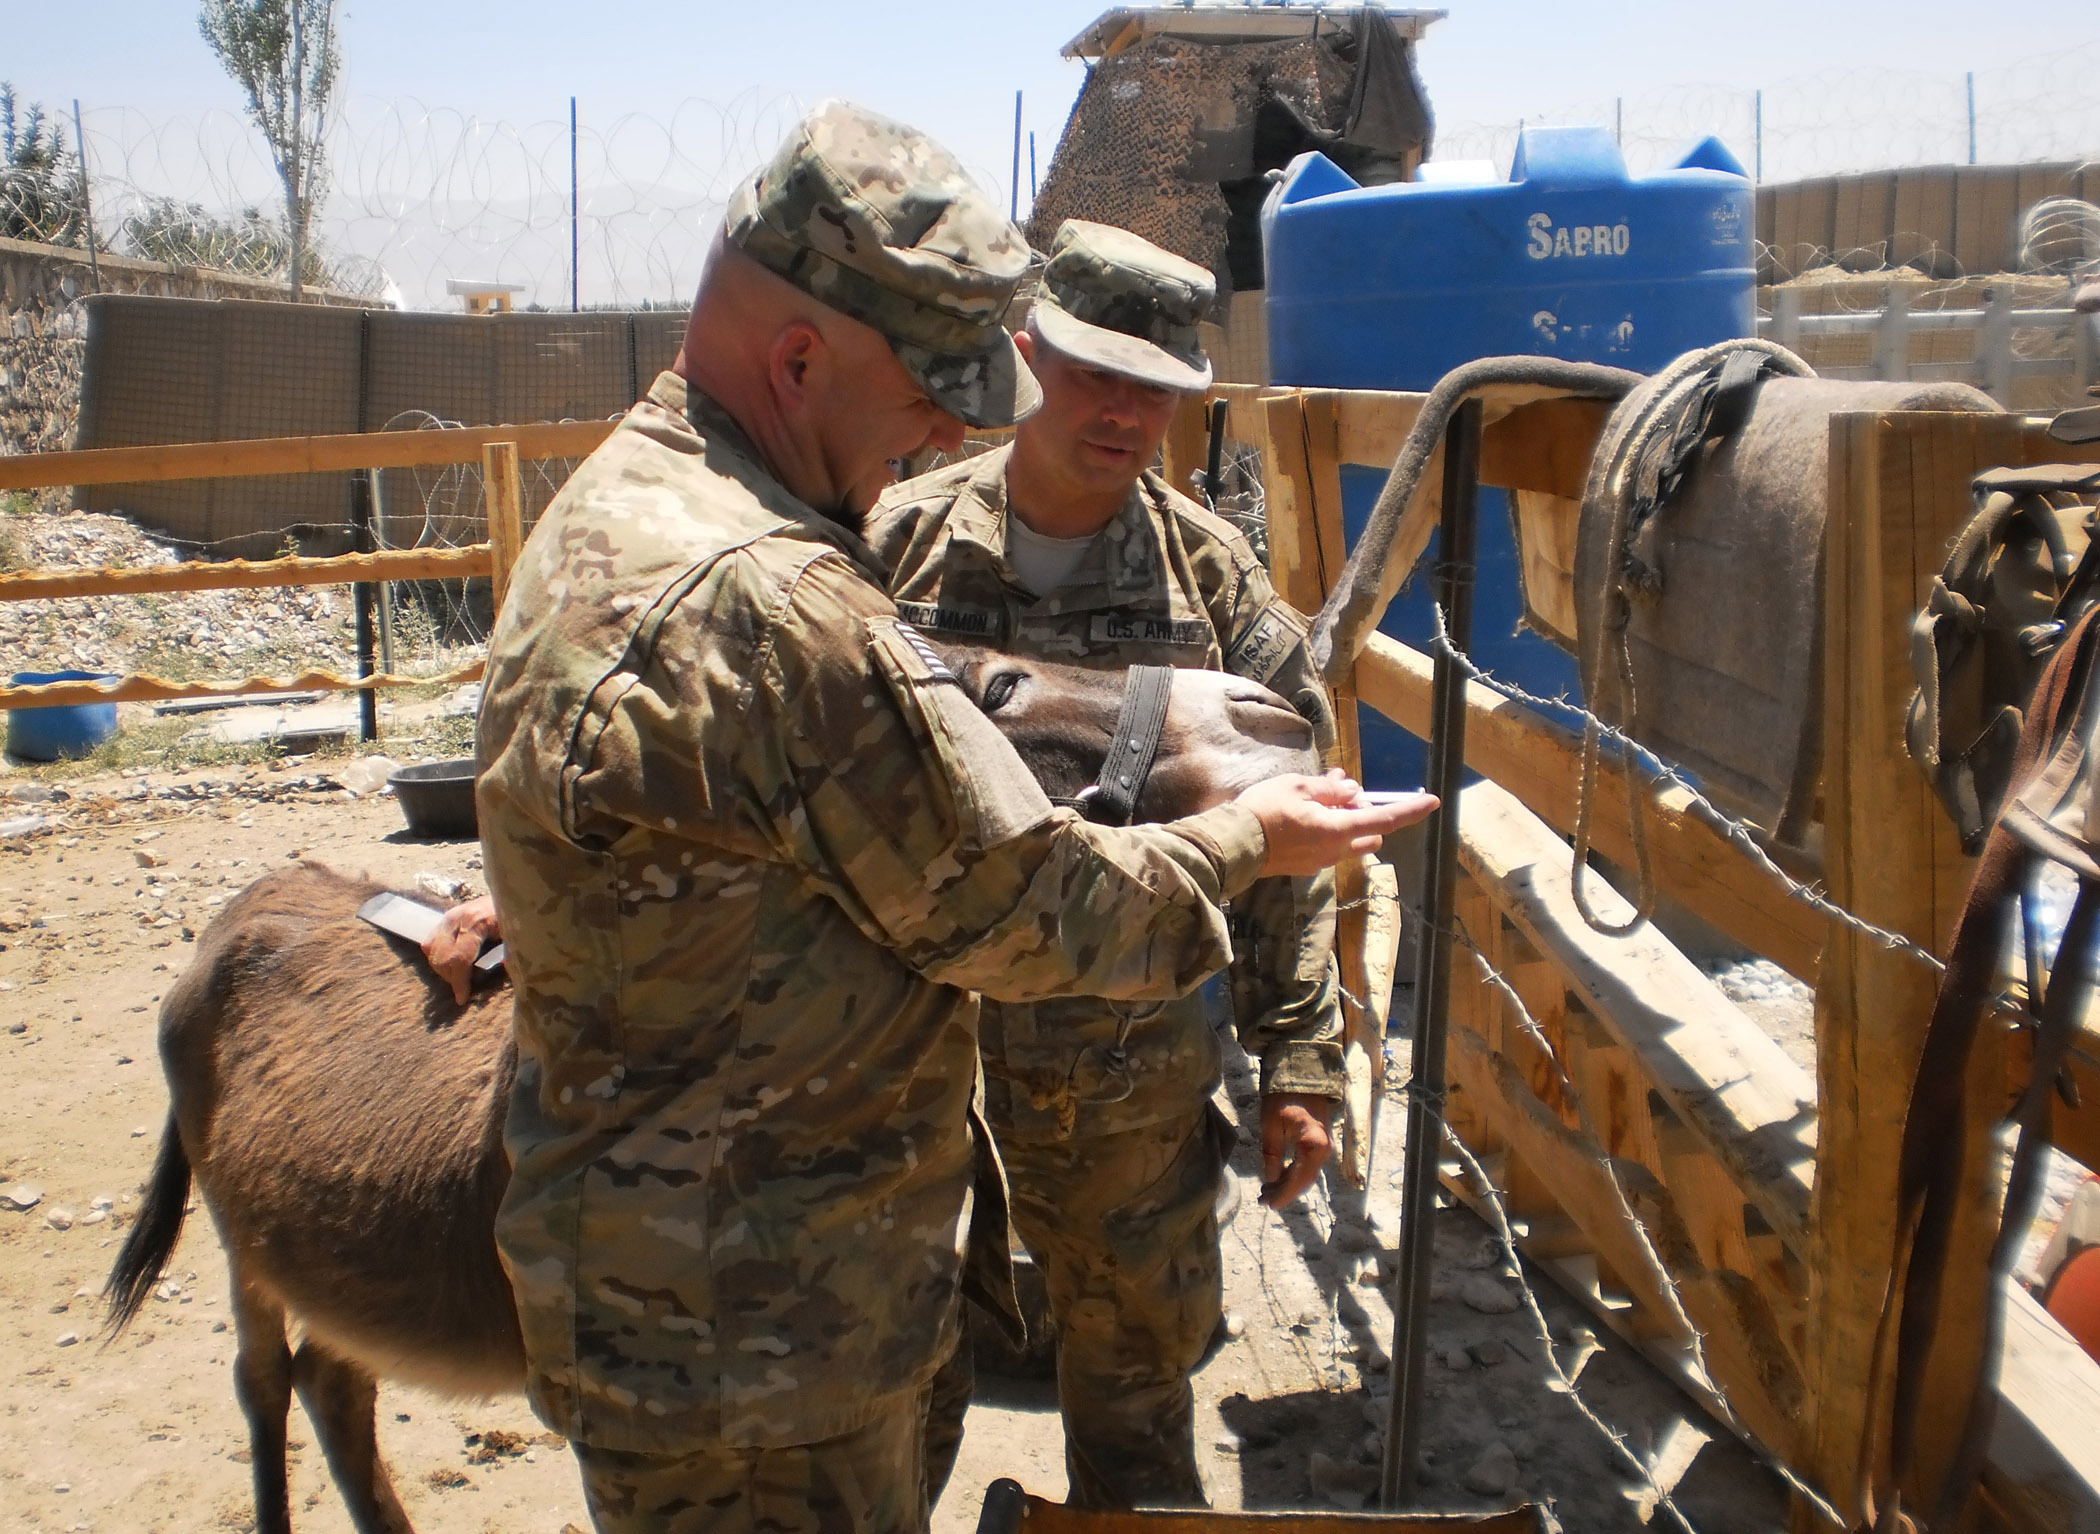 U.S. Army Sgt. Maj. Lynward Hall (left), non-commissioned officer-in-charge from Statesboro, Ga., and U.S. Army Maj. George McCommon, veterinarian from Macon, Ga., administer worm medication to a donkey on Combat Outpost Baraki Barak, Afghanistan, June 21. McCommon and Hall both with the Georgia Agribusiness Development Team, traveled to COP Baraki Barak to provide U.S. Army donkeys with routine preventive health care. (Photo by U.S. Army Sgt. Christopher Ellis)